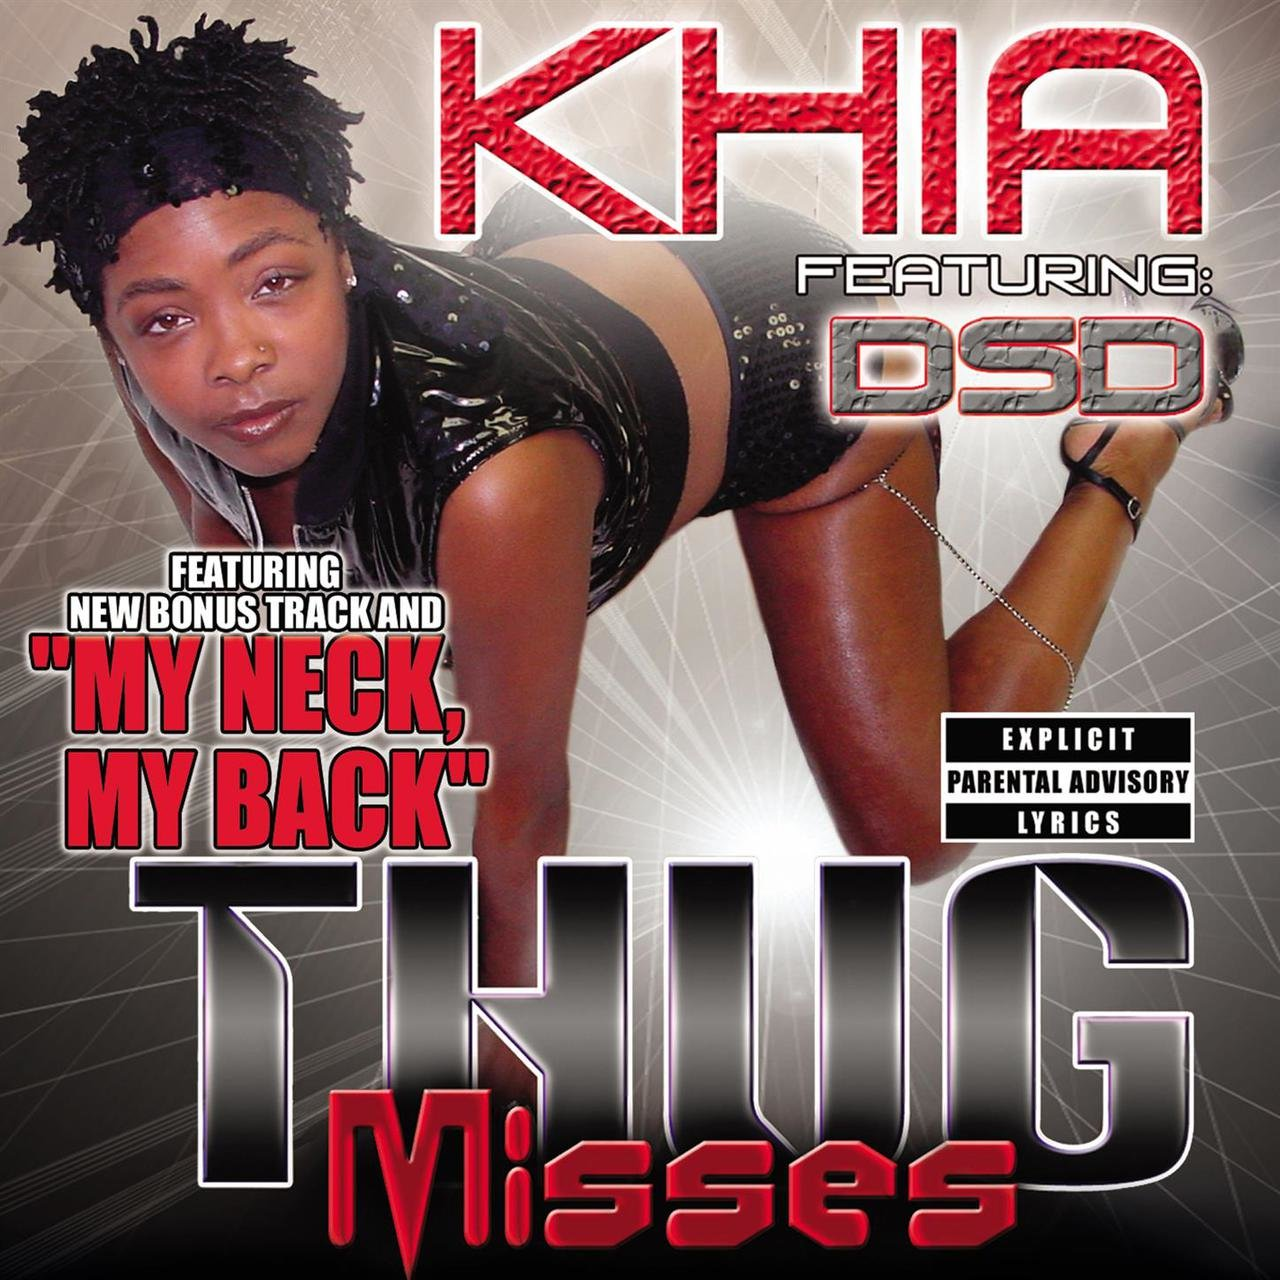 Khia lick it good sorry, that